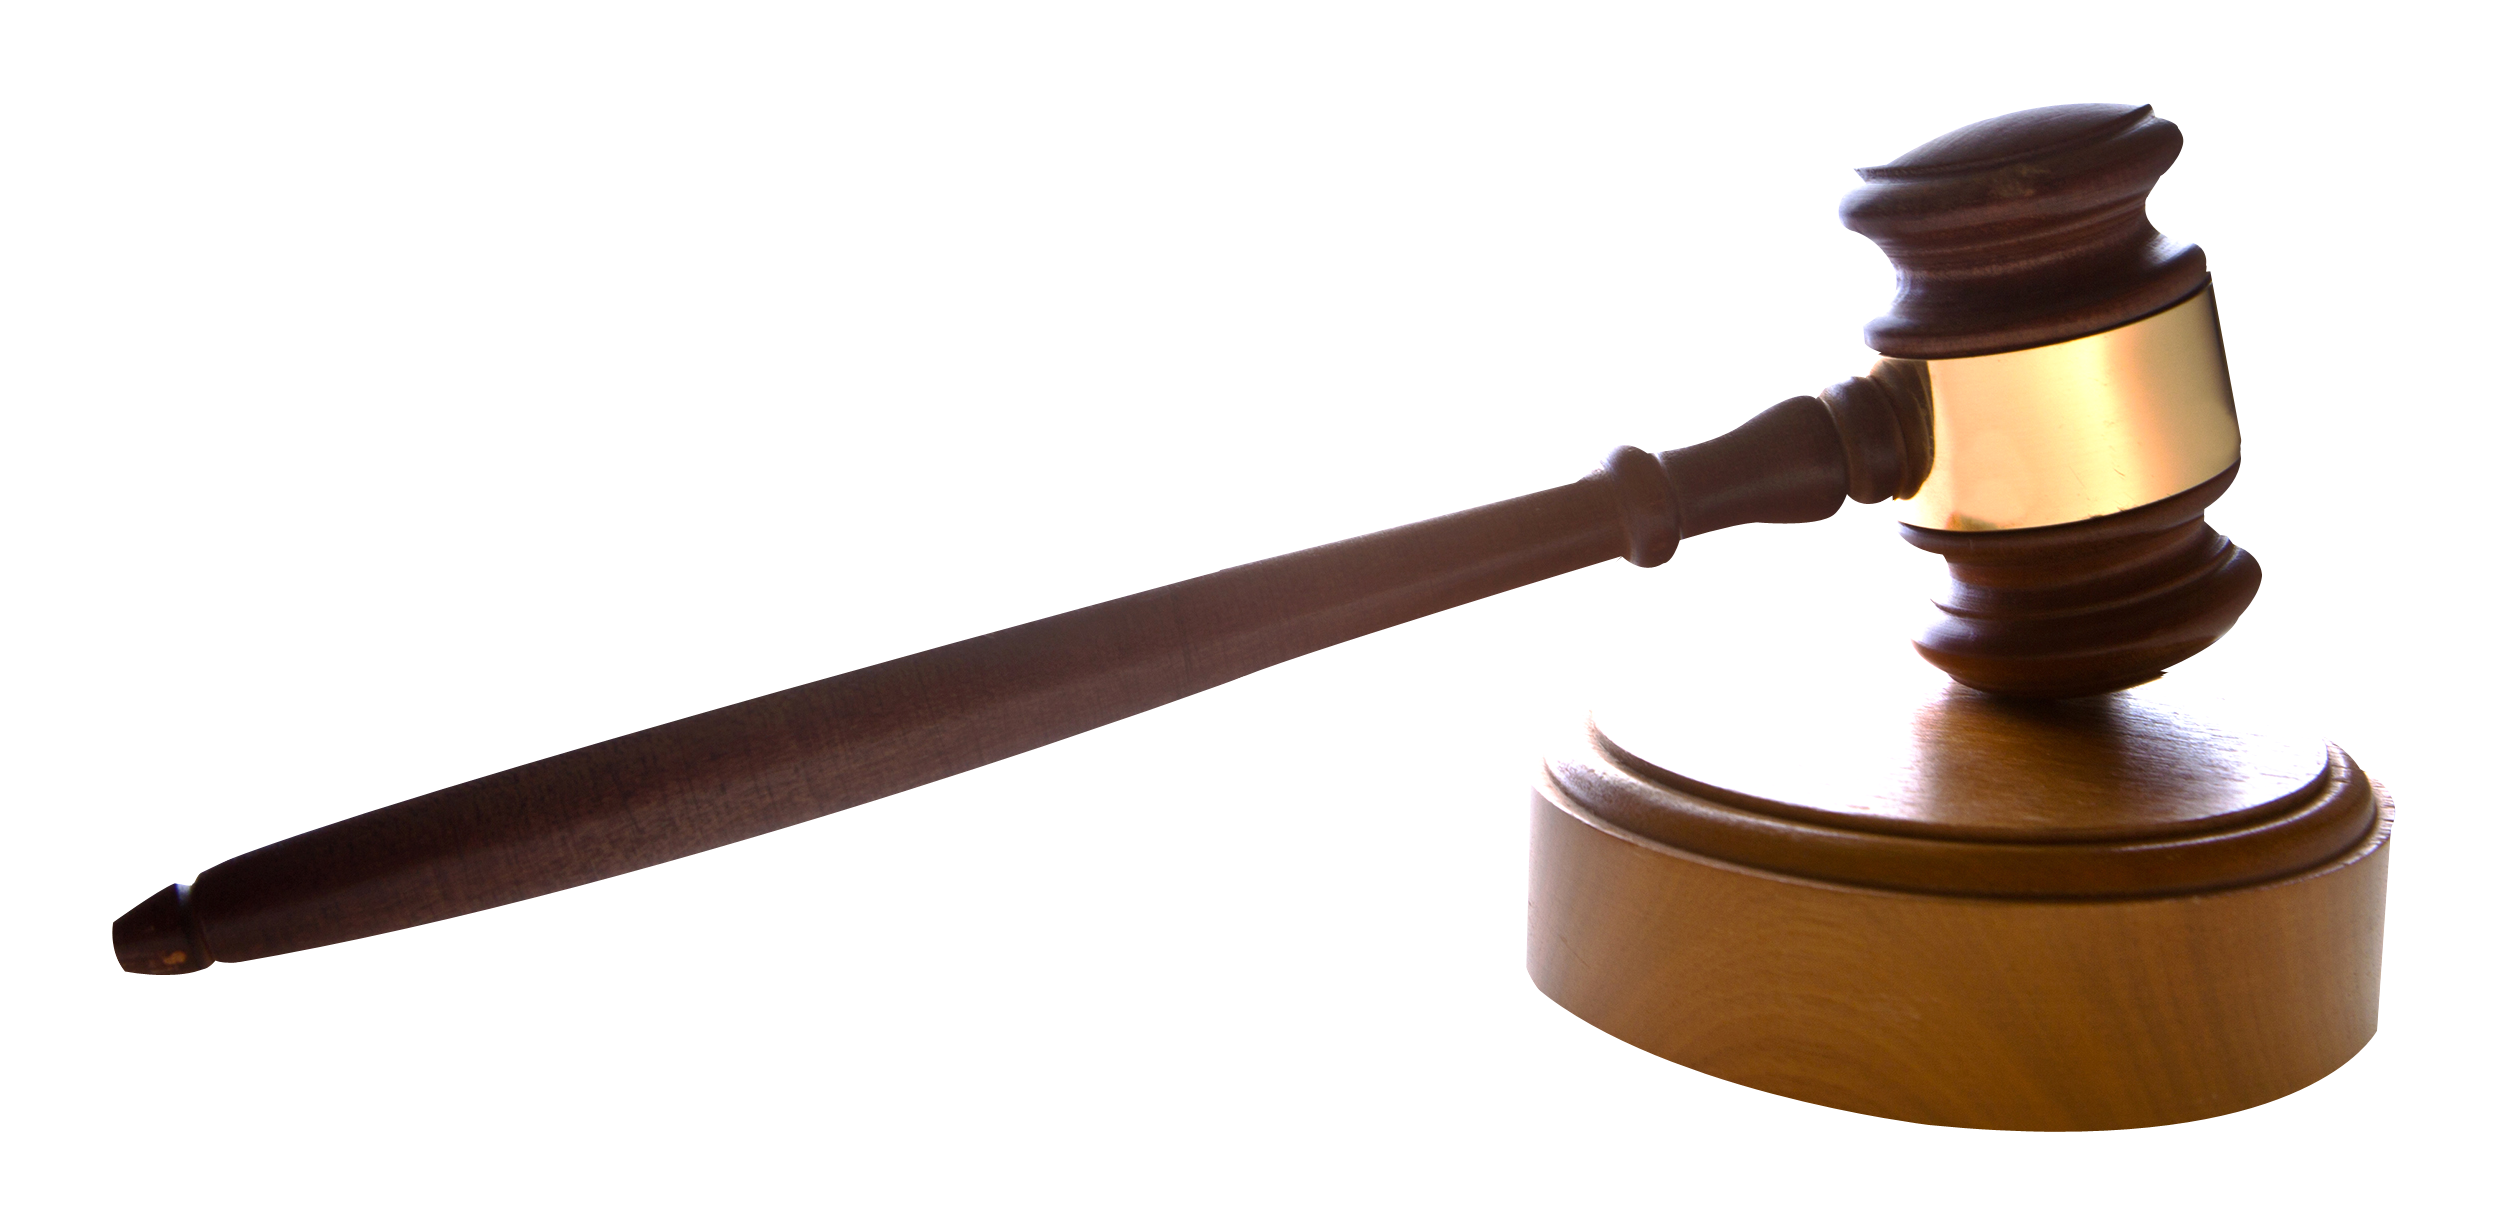 Gavel-Law-PNG-Image